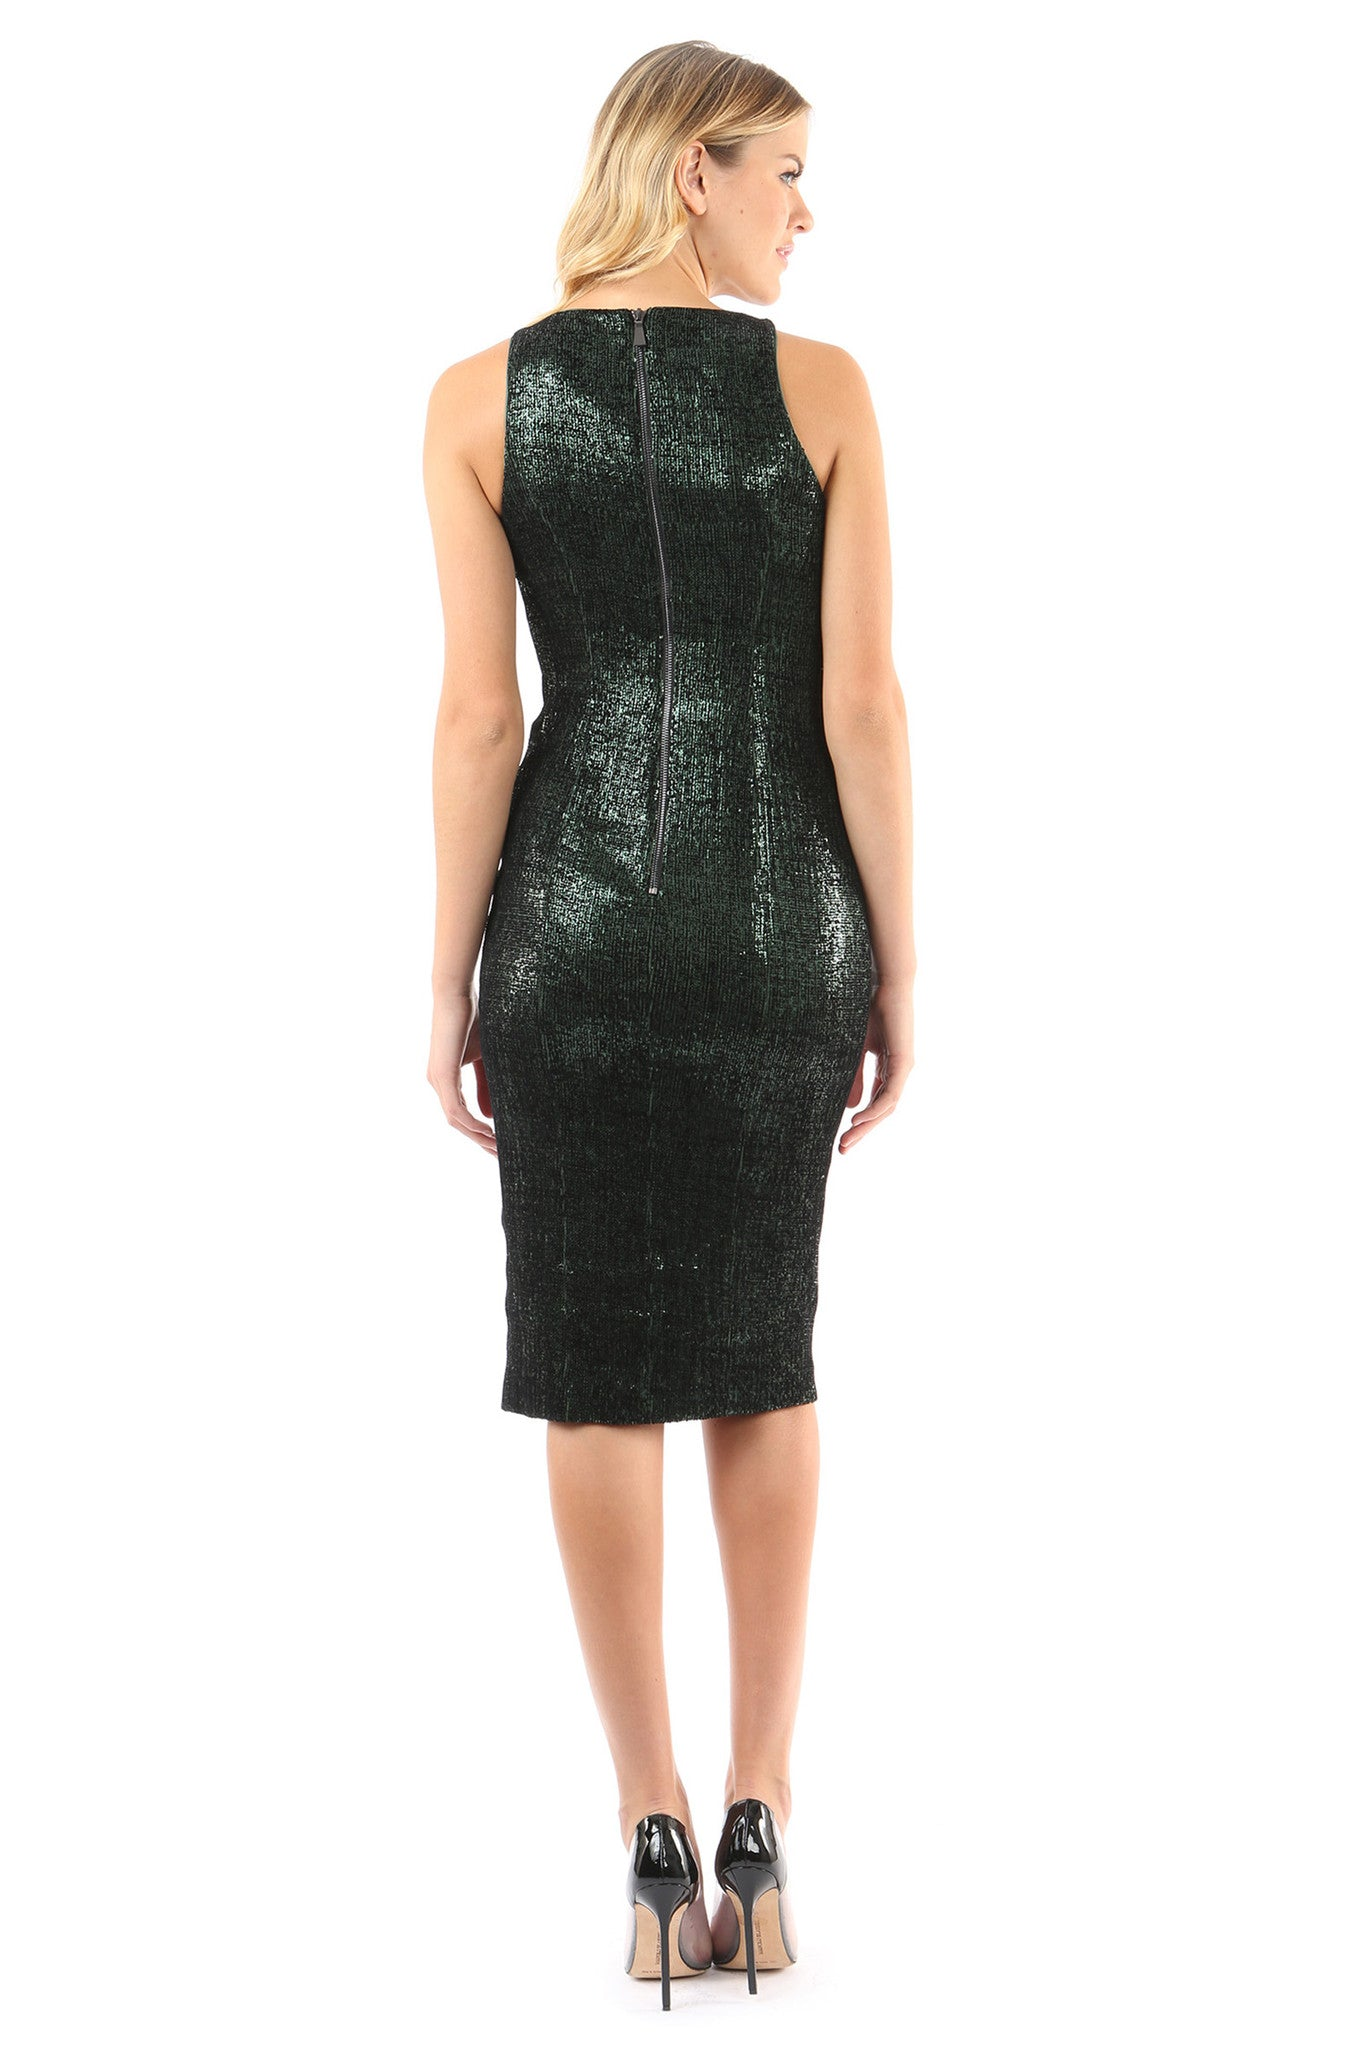 Jay Godfrey Black Sequin Deep-V Dress - Back View